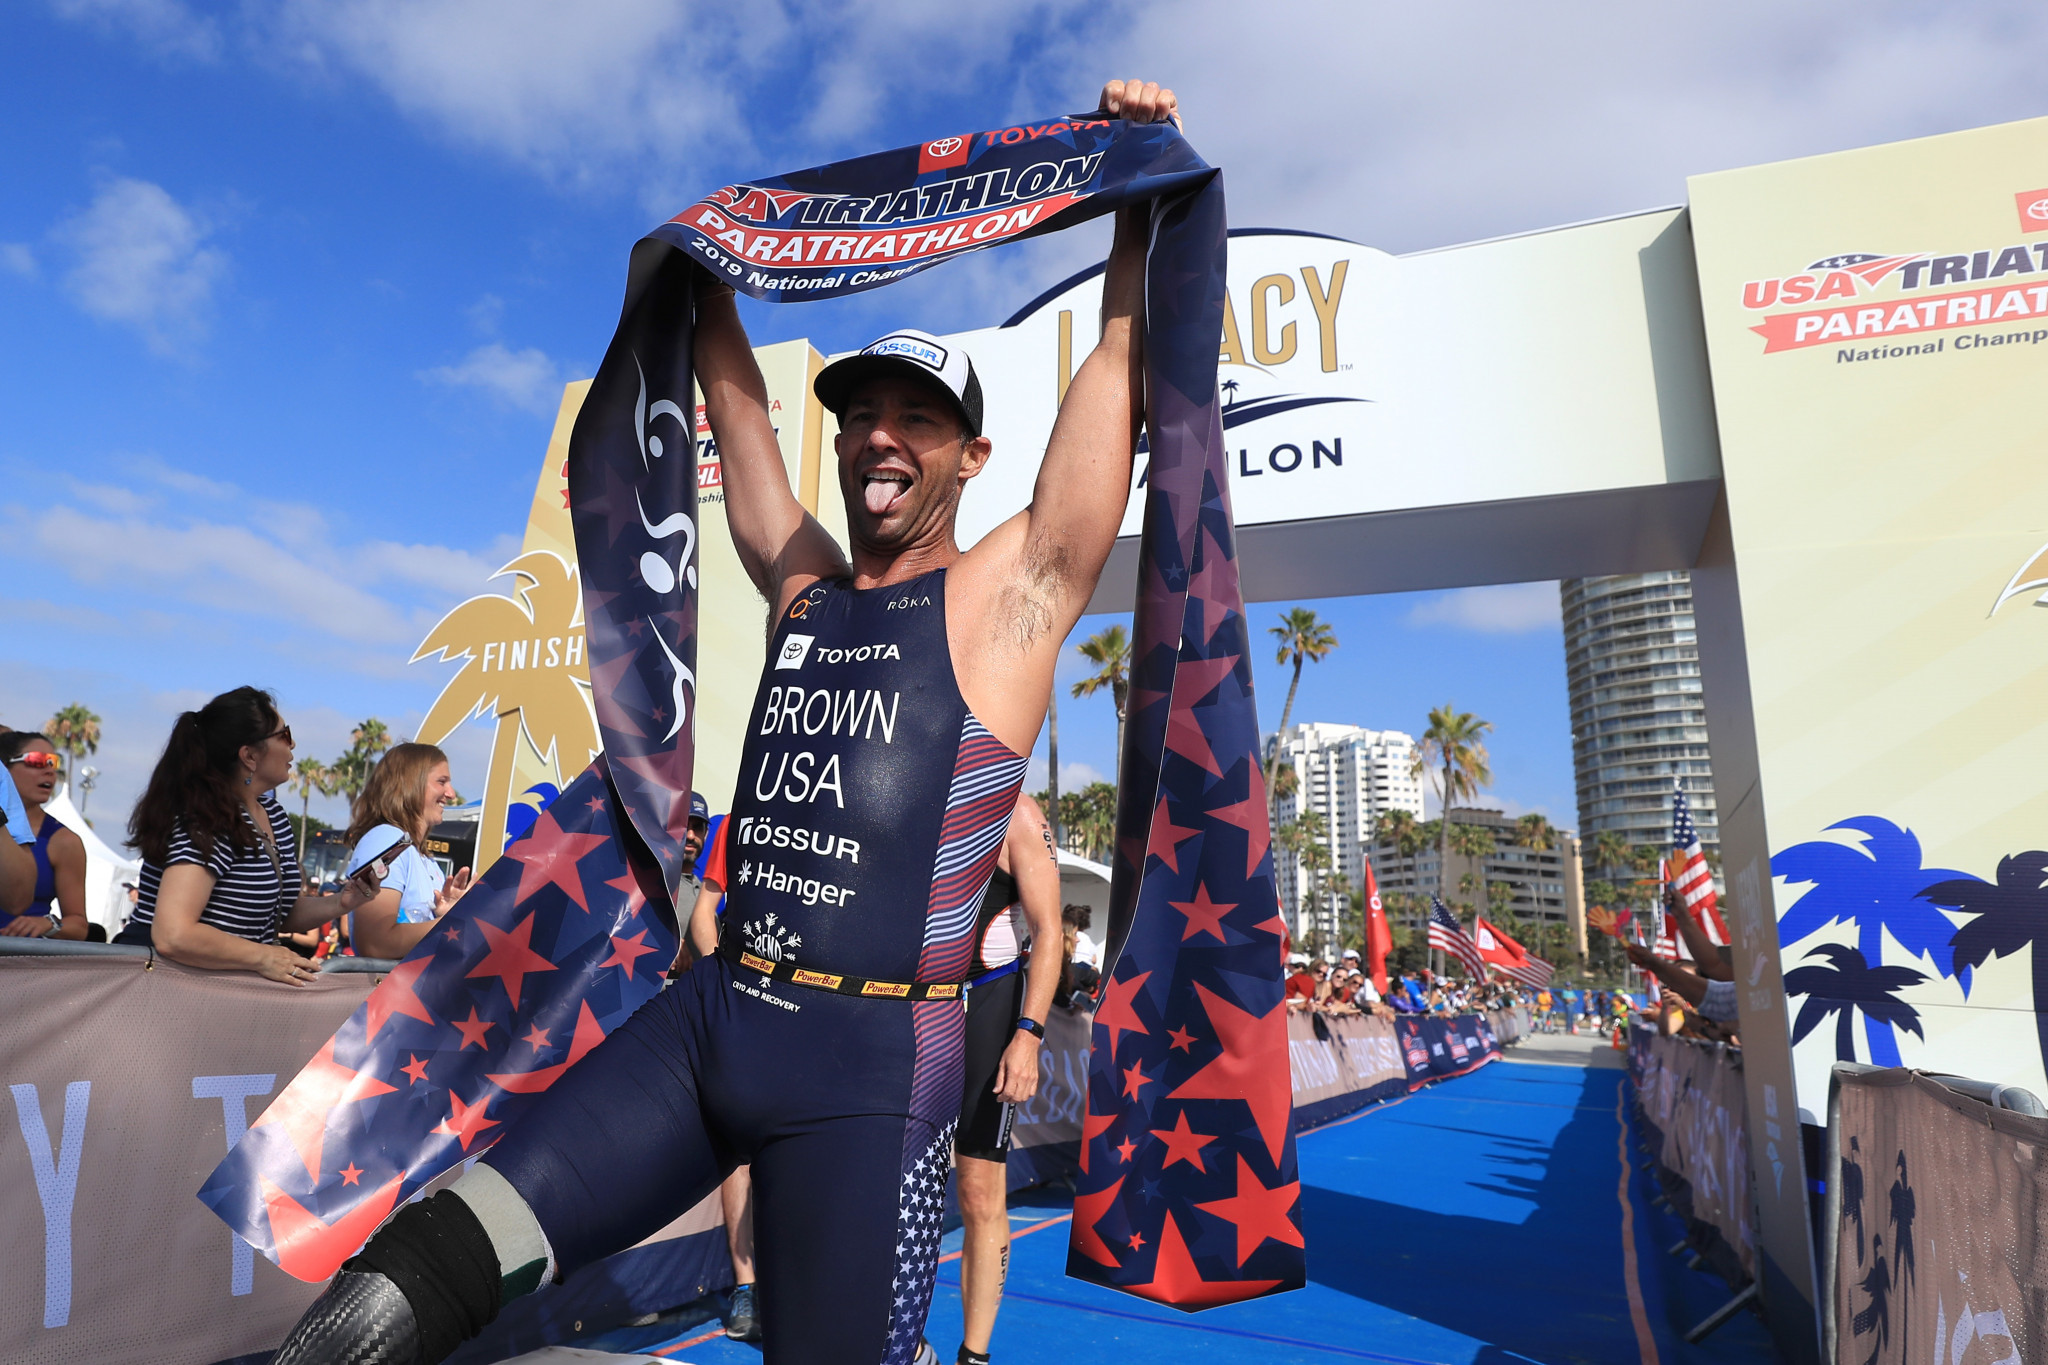 US Para-triathlete Brown cleared of doping violation after contamination defence